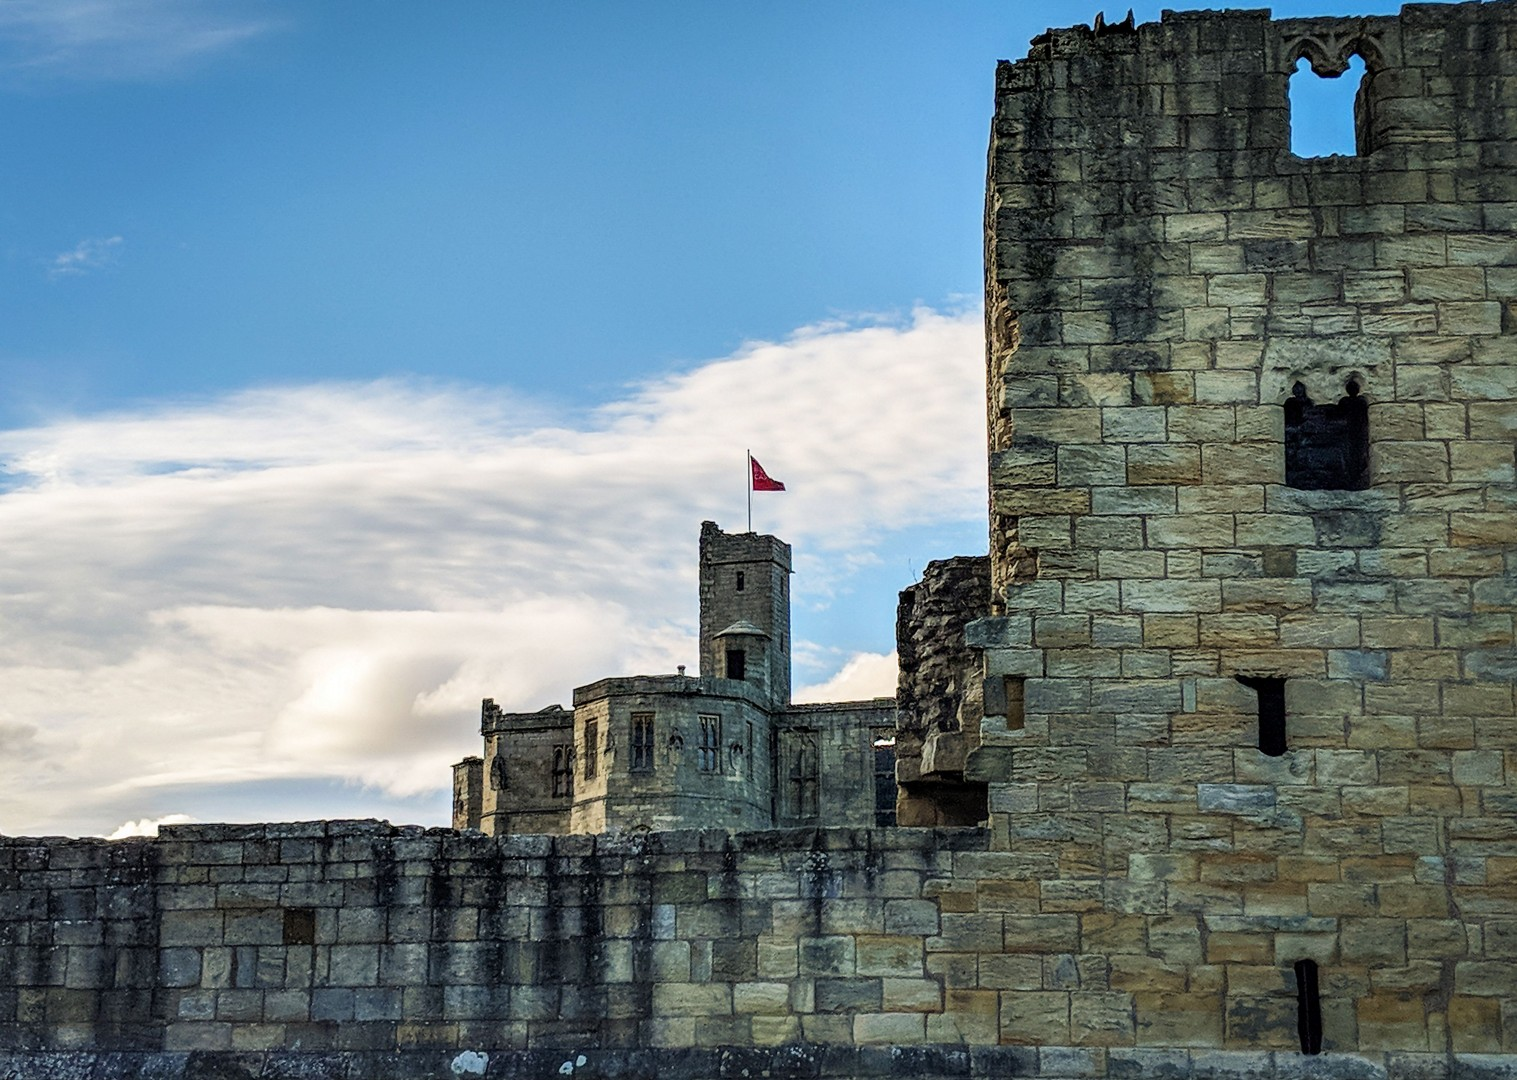 3 Warkworth Castle.jpg - UK - Coast and Castles - Supported Leisure Cycling Holiday - Family Cycling